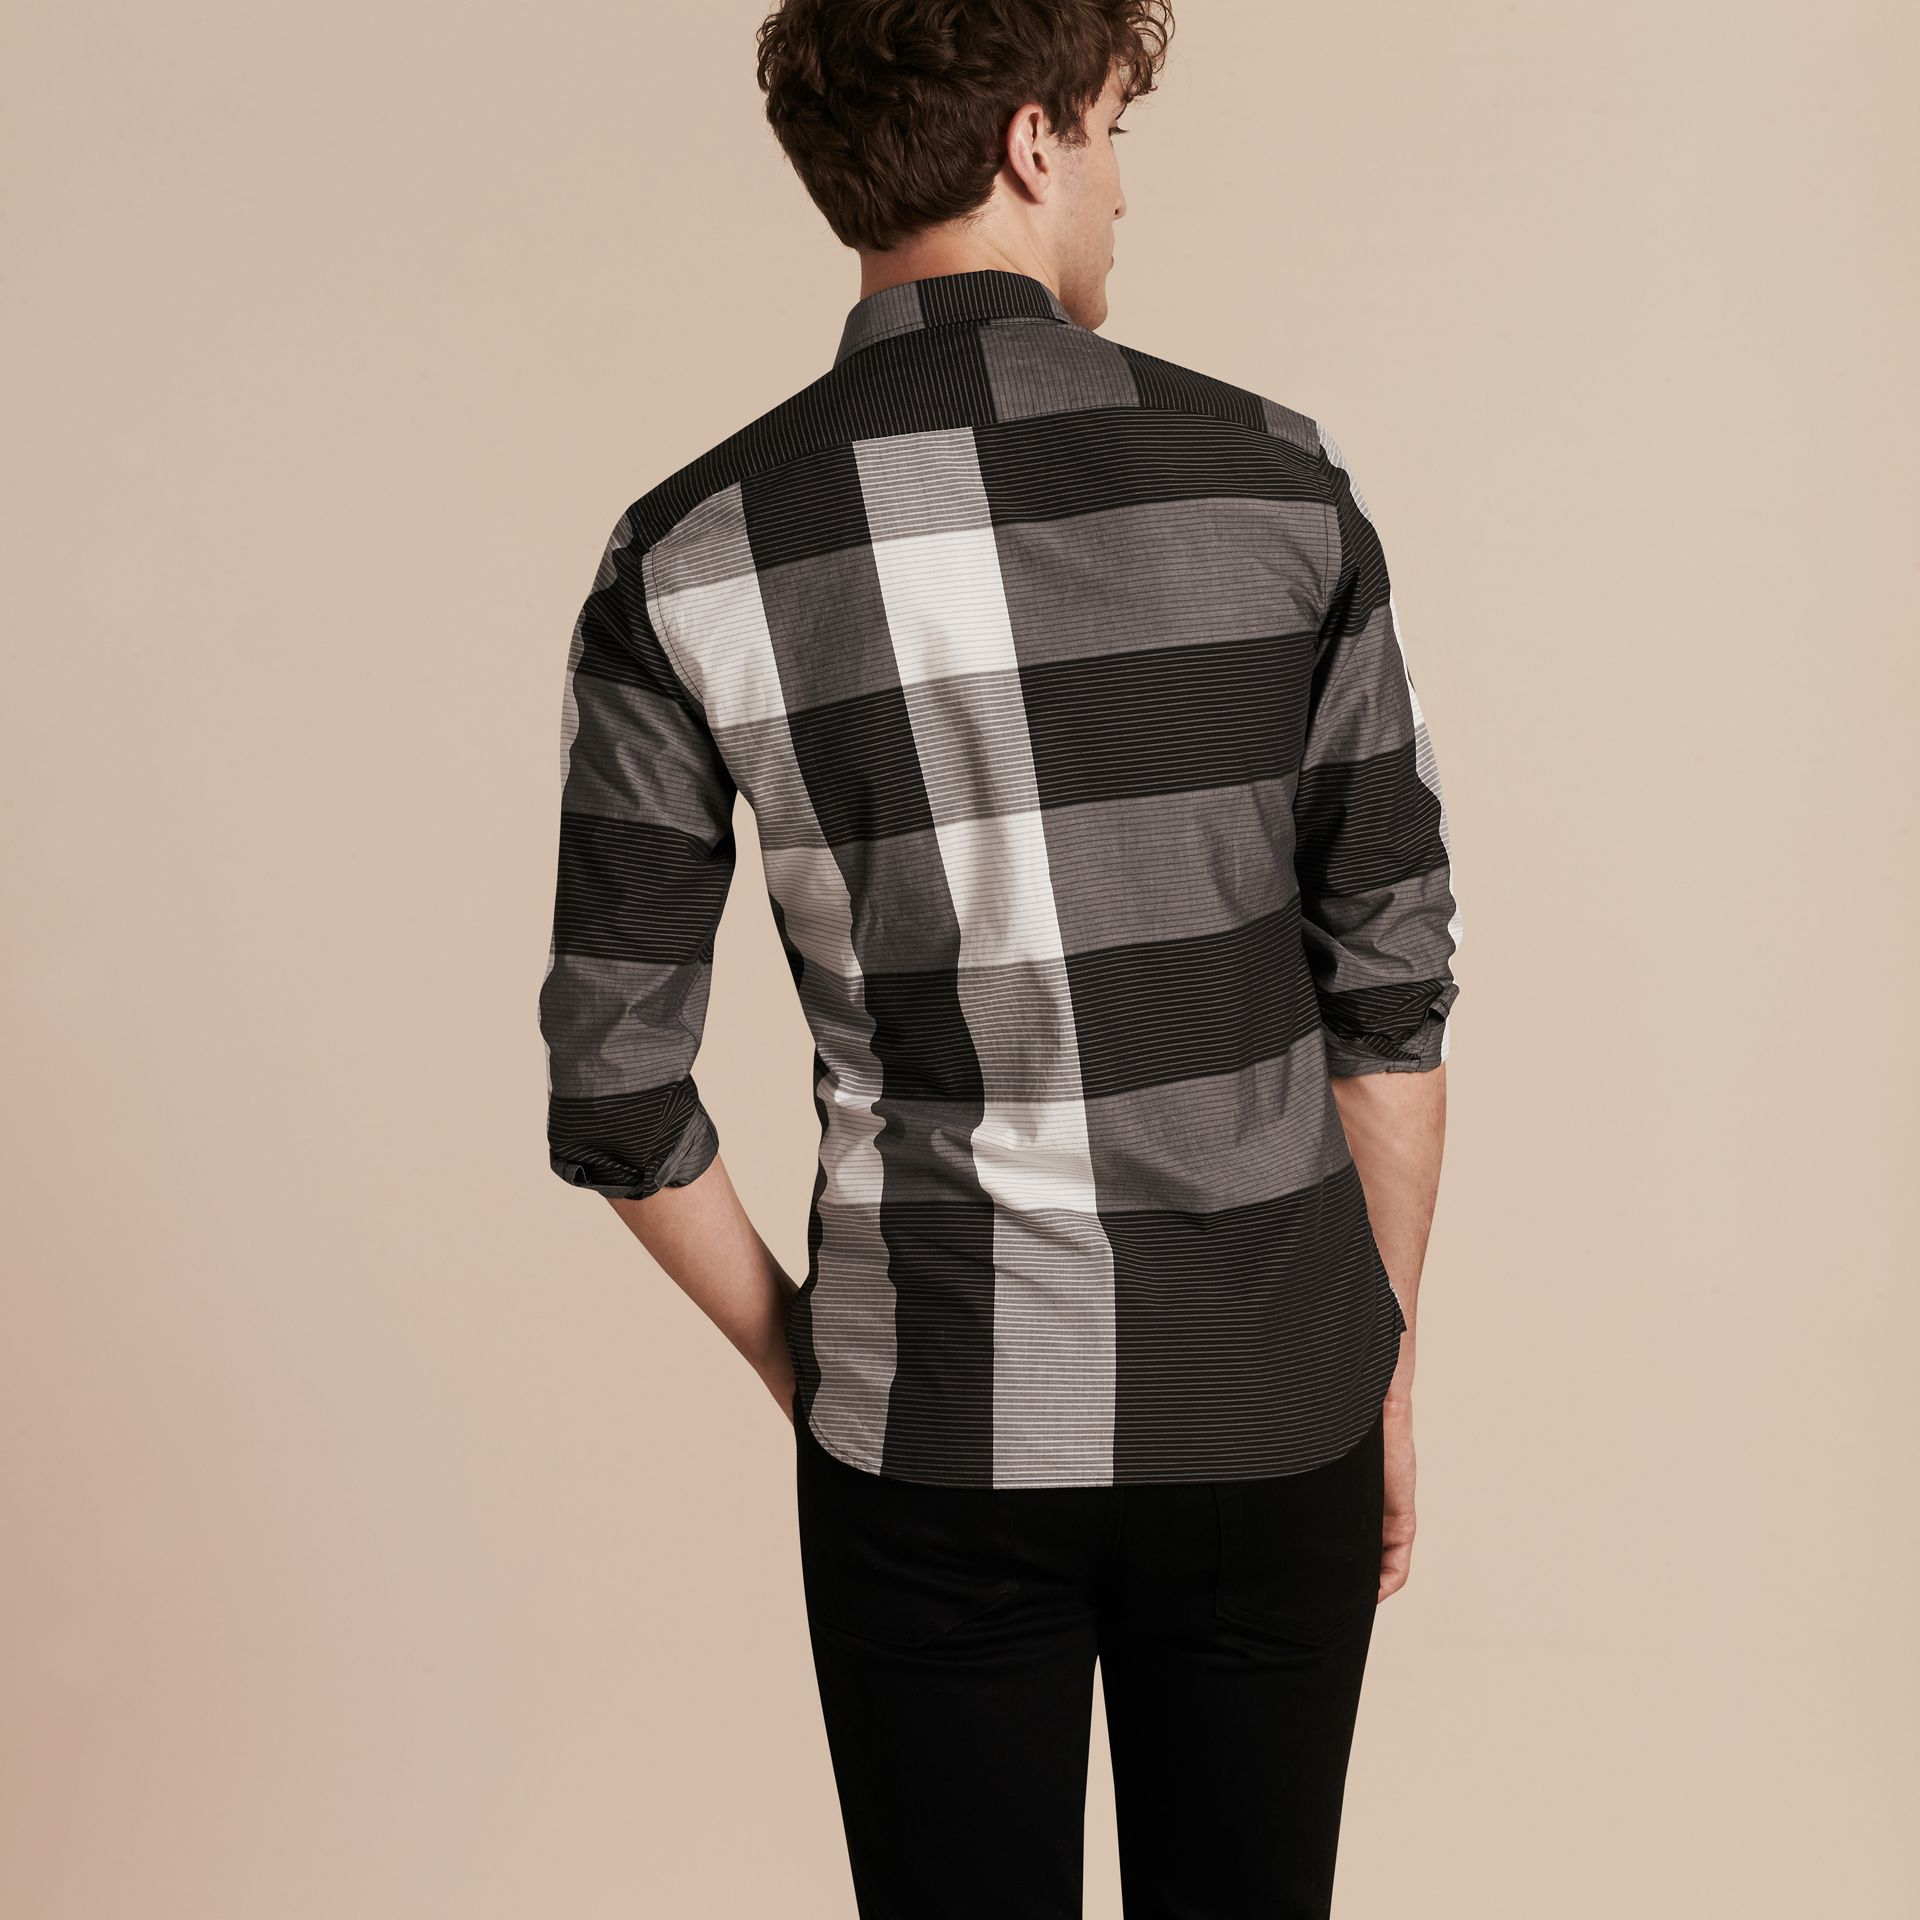 Black Graphic Check Cotton Shirt Black - gallery image 3